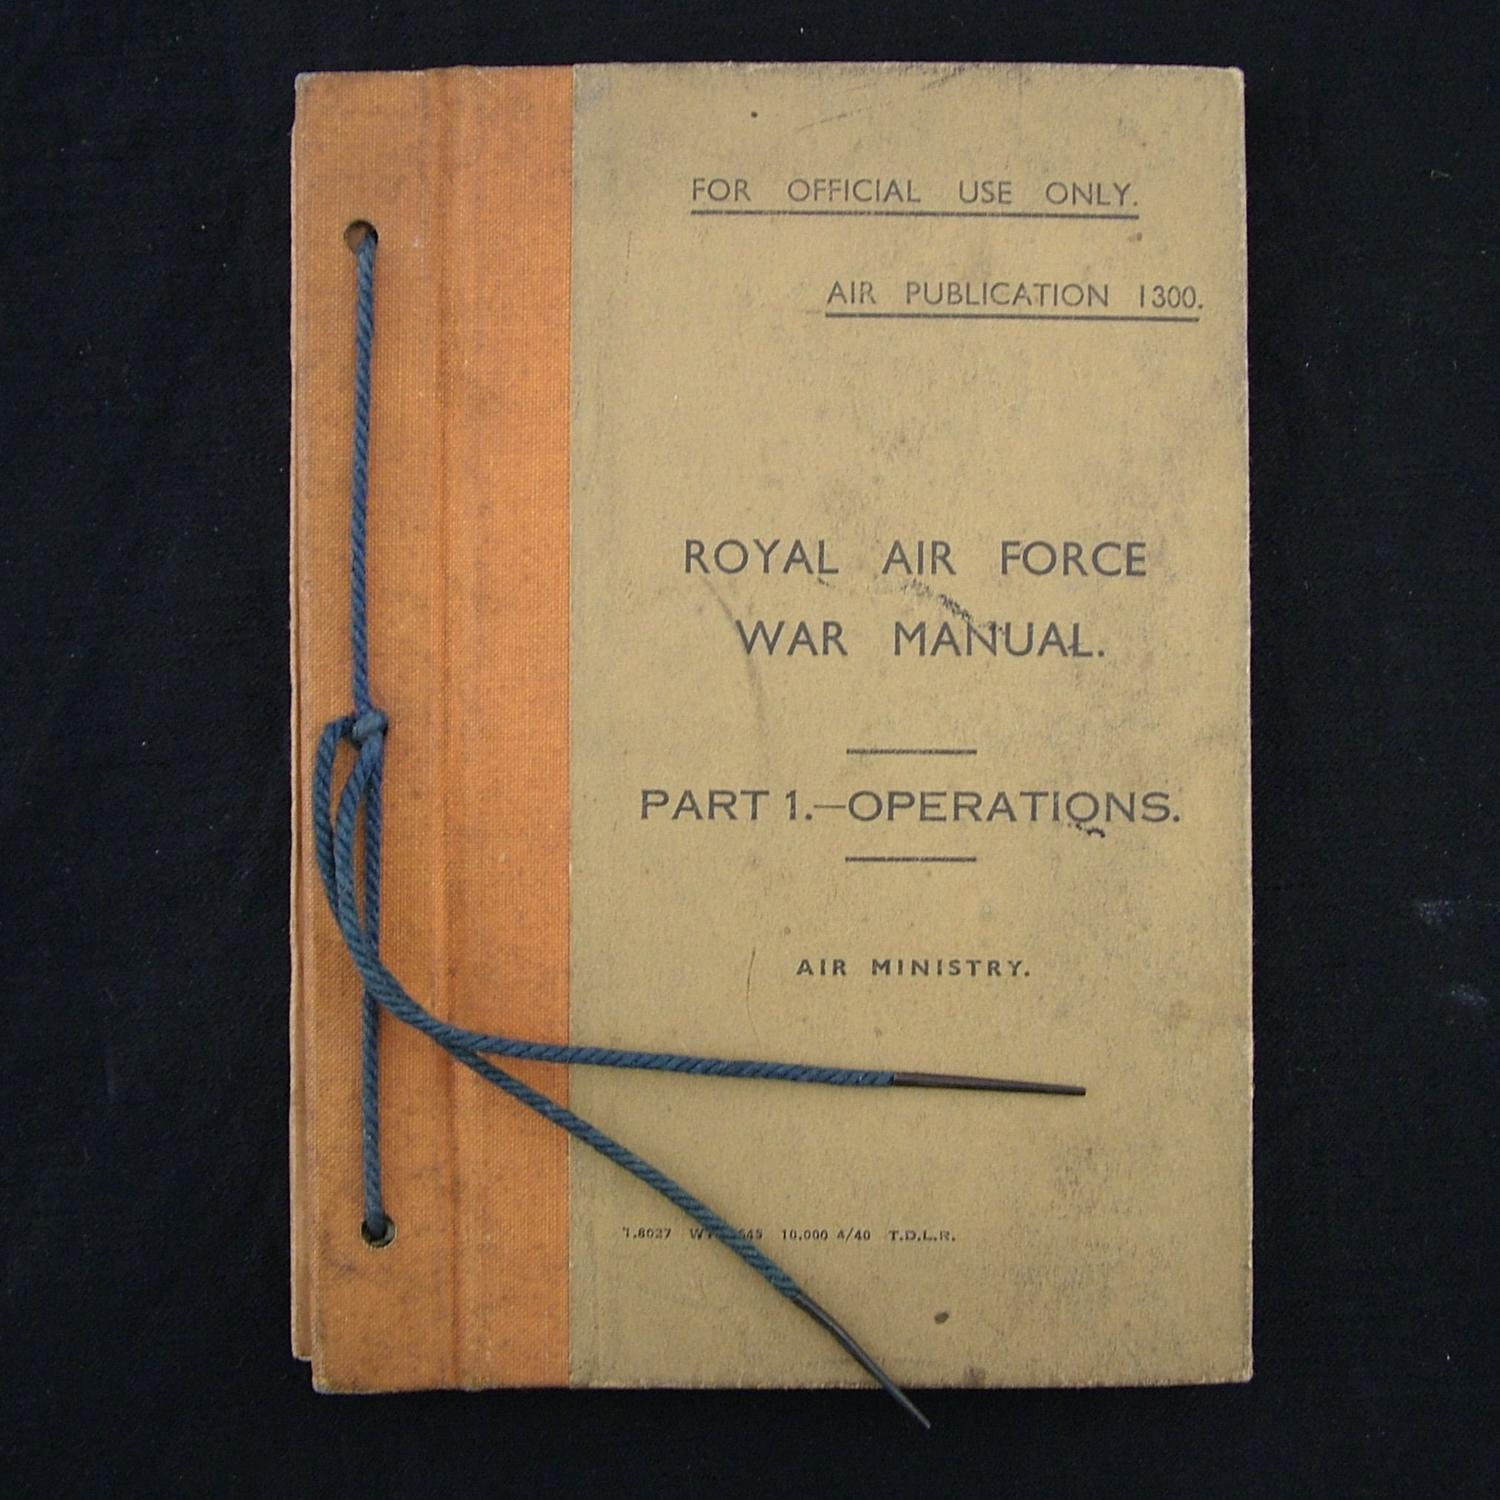 RAF War Manual, Part 1 - Operations